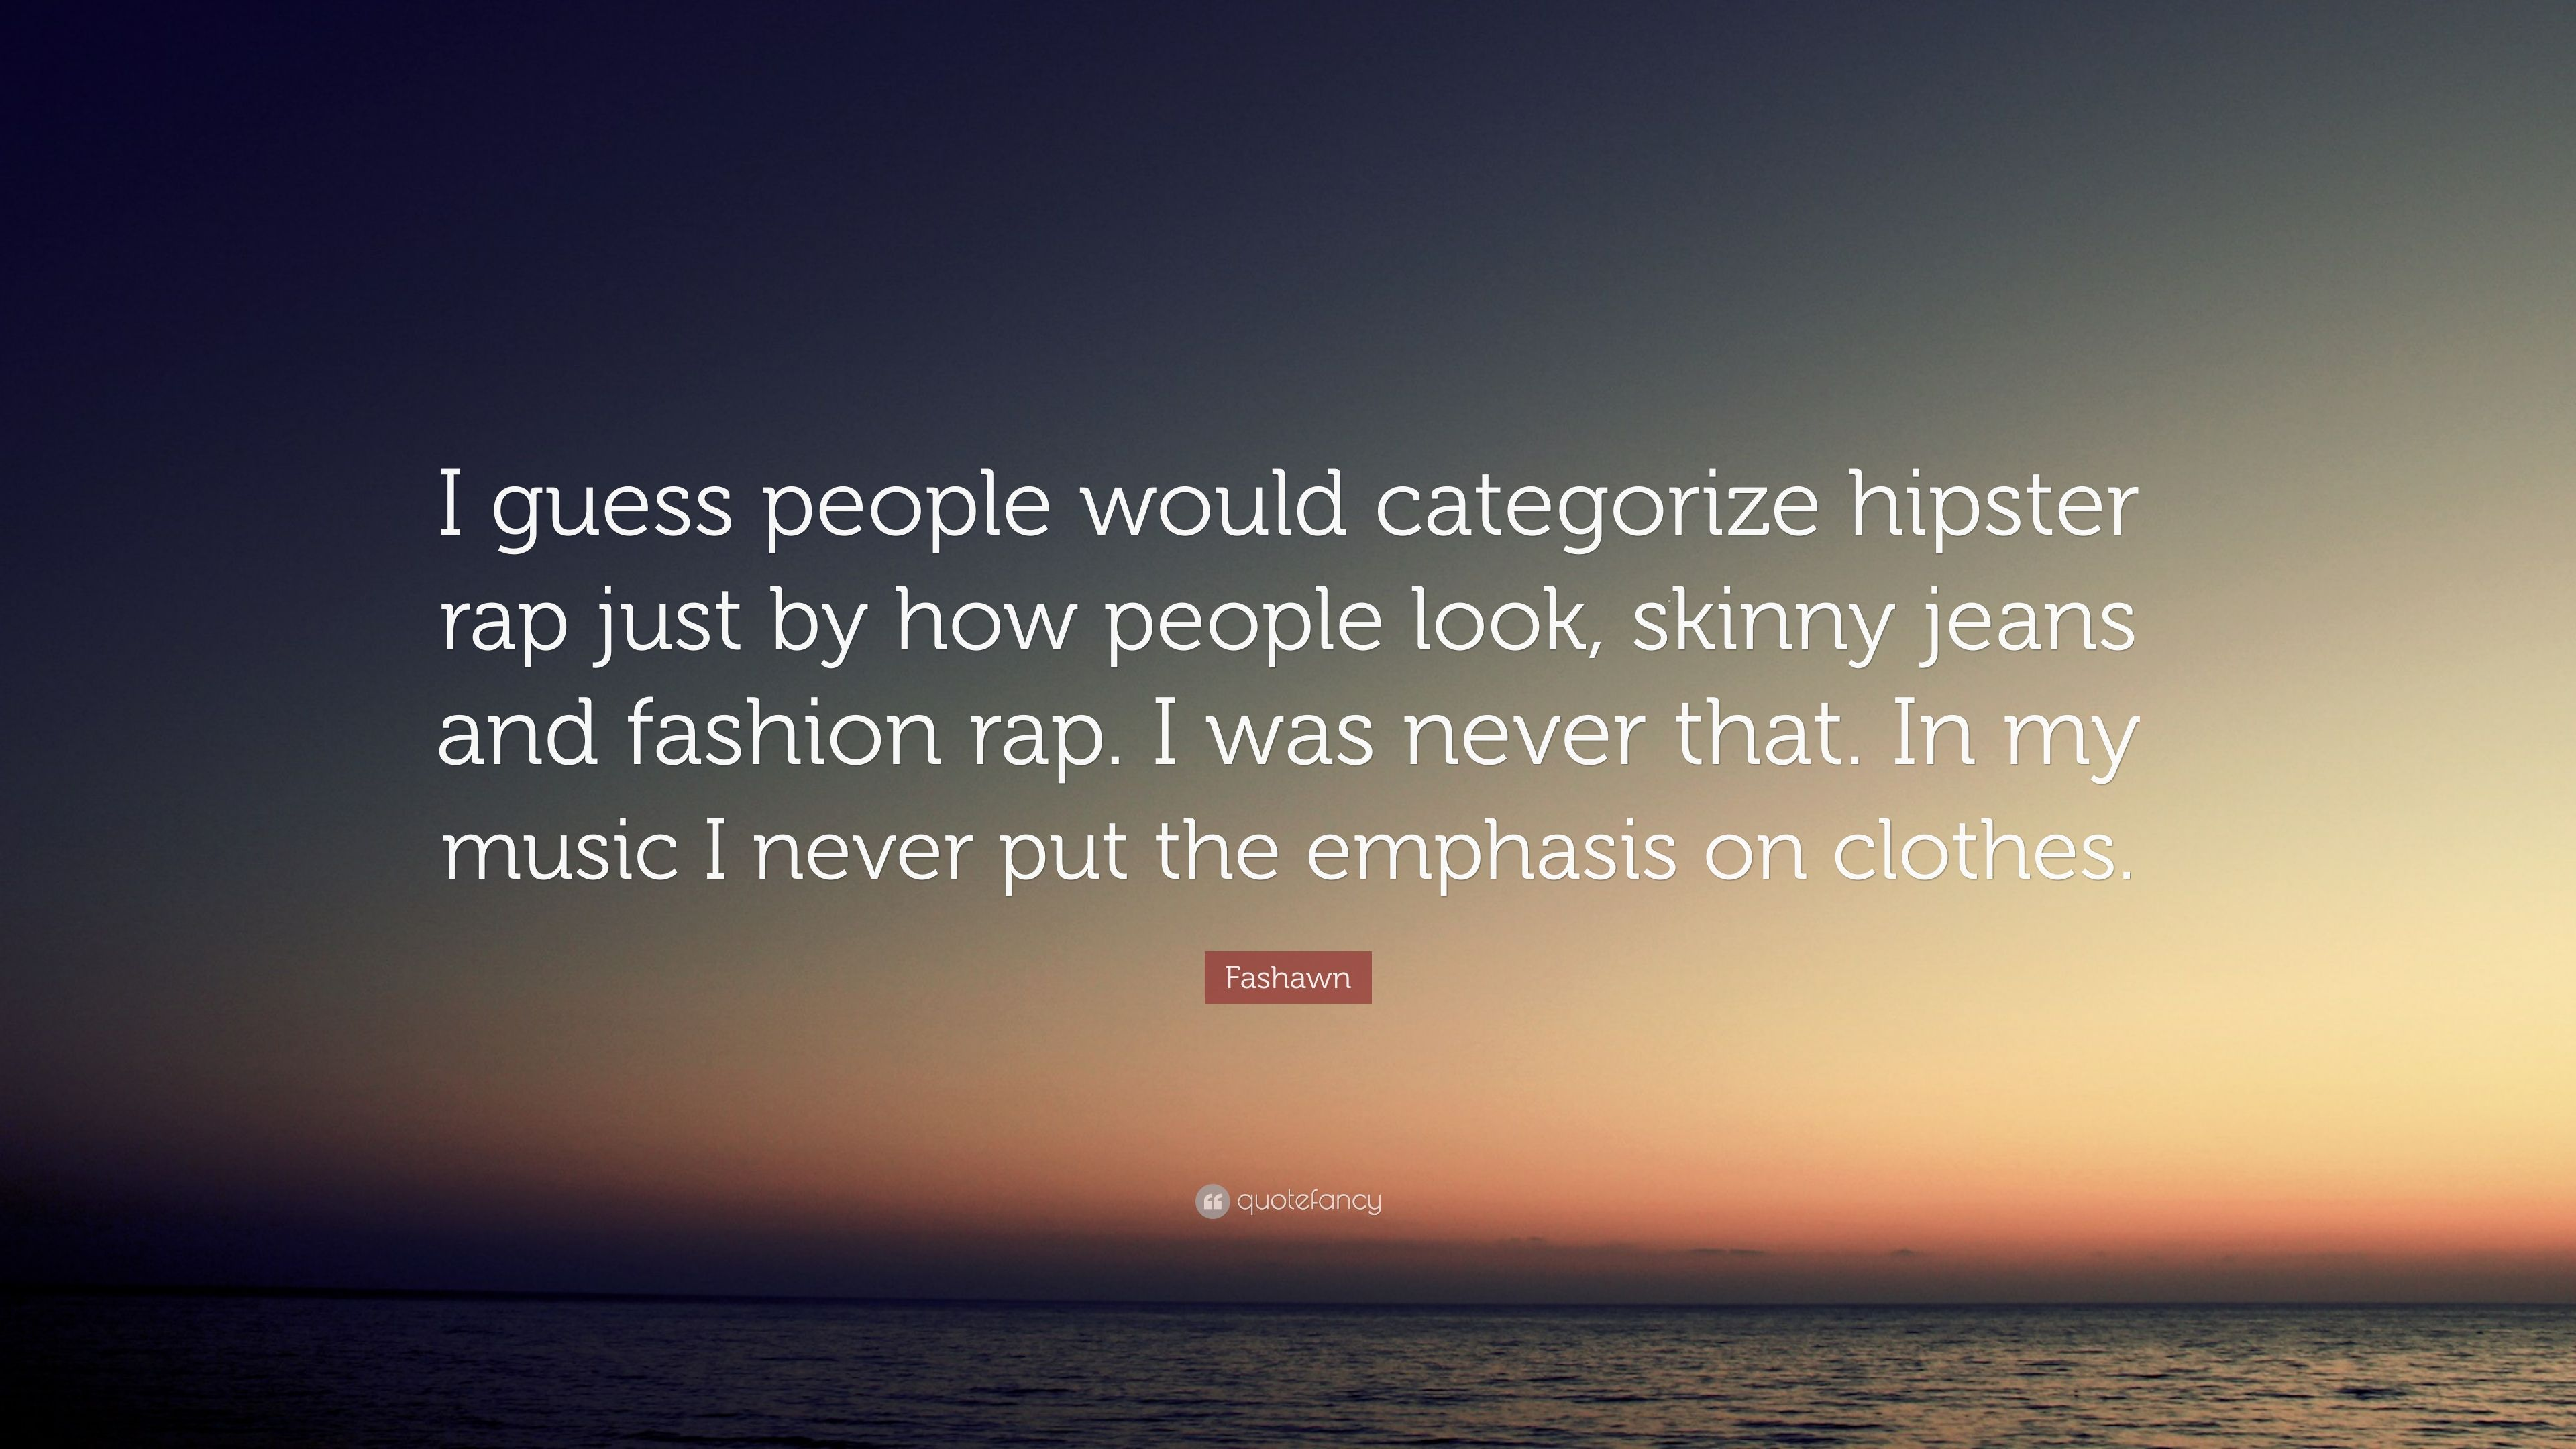 Must see Wallpaper Music Hipster - 2659284-Fashawn-Quote-I-guess-people-would-categorize-hipster-rap-just-by  Pic_1009794.jpg